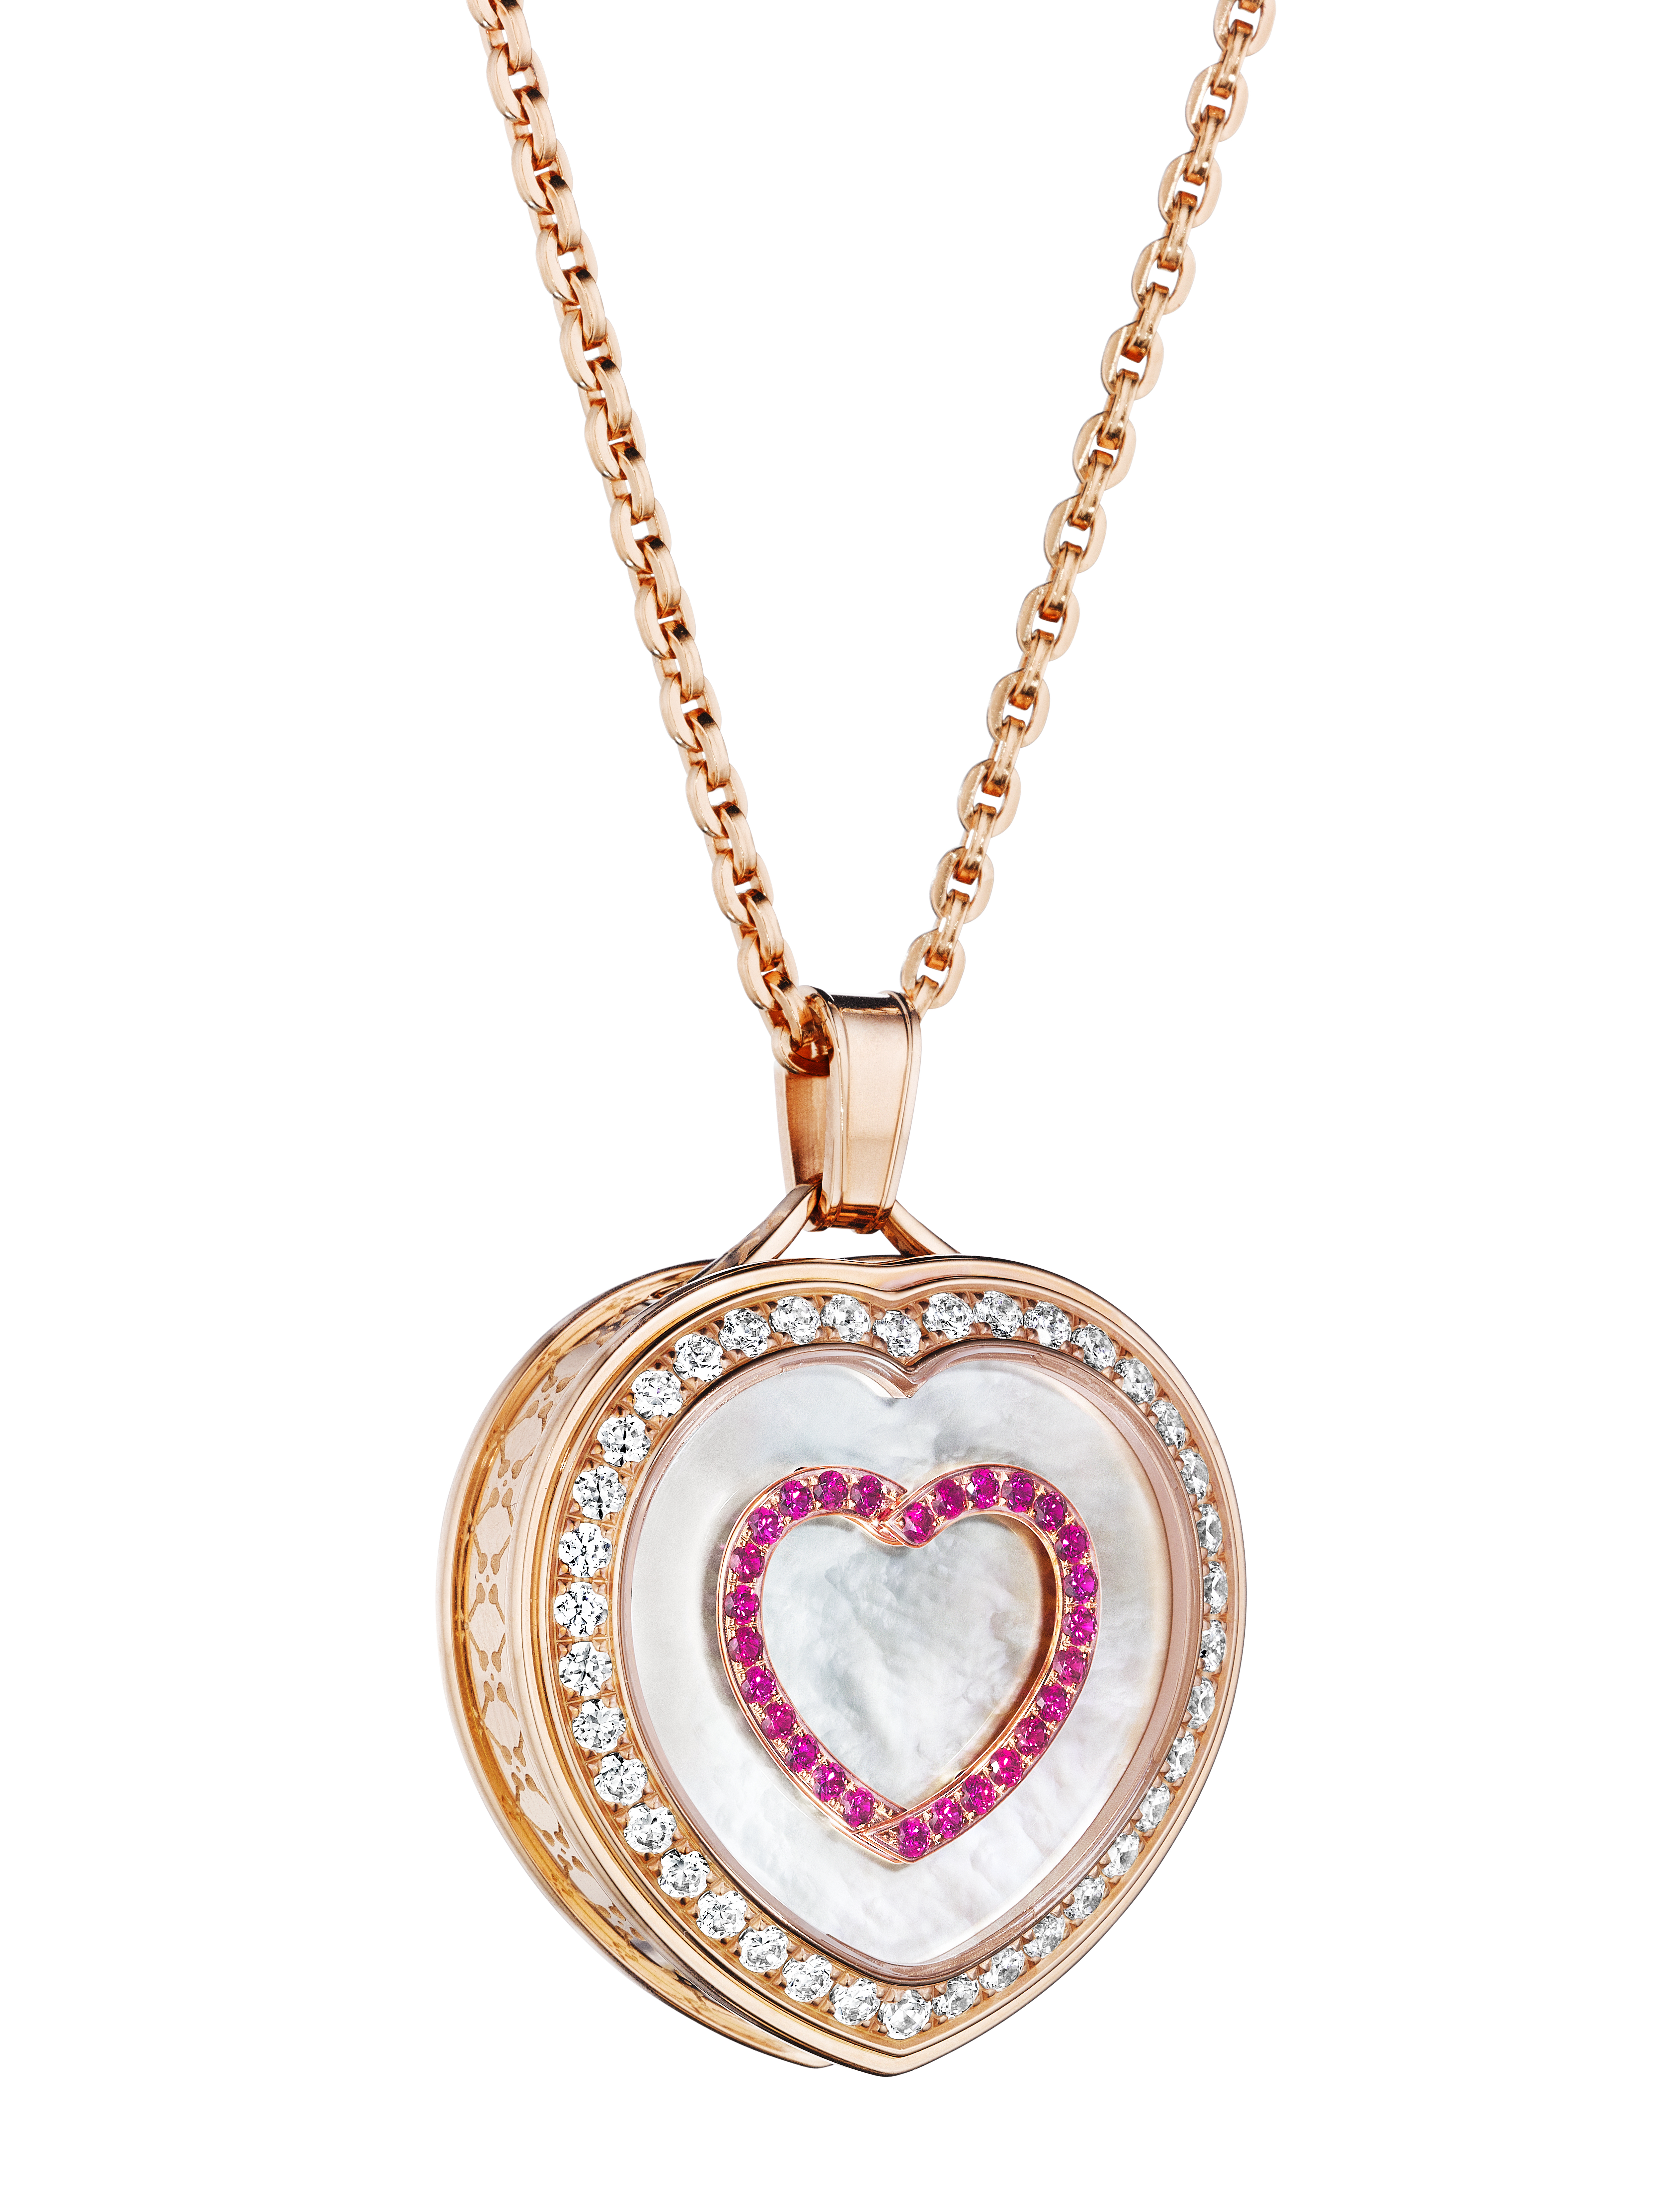 The Paul Forrest & Co. Heart's Passion pendants, with Magnificent Motion technology are Swiss-made with Swiss-made movements.